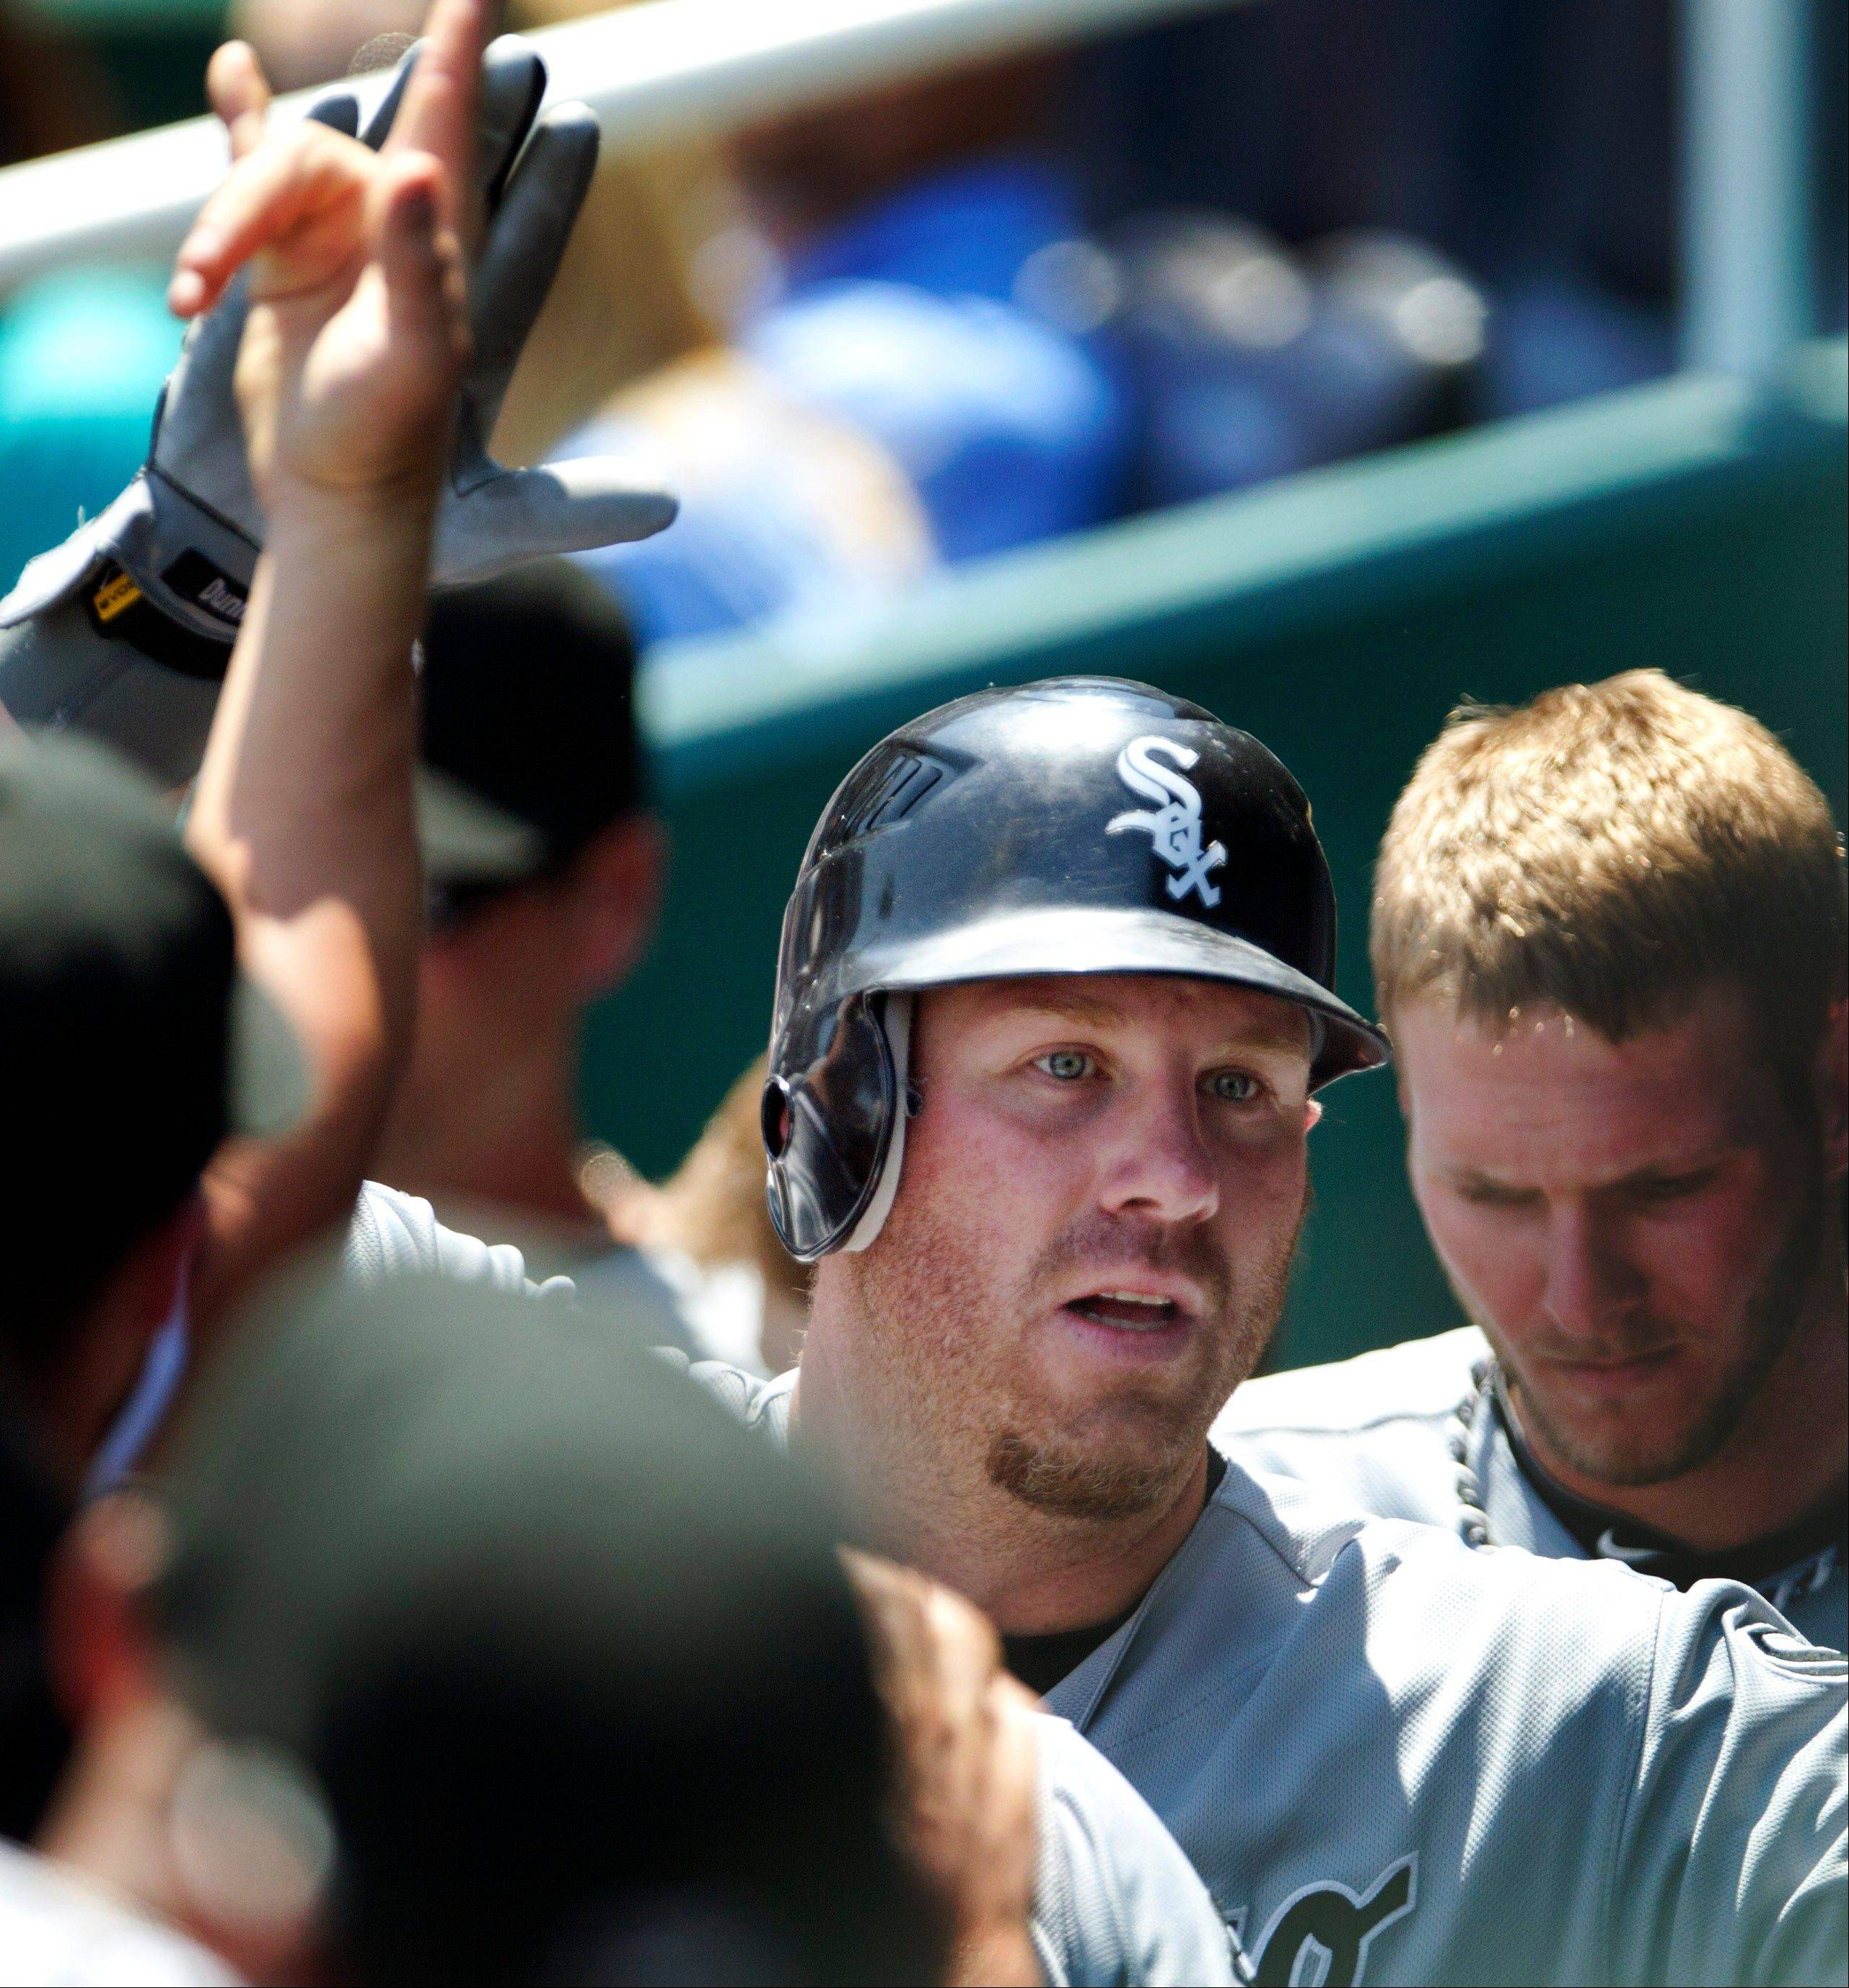 White Sox slugger Adam Dunn is congratulated by teammates Sunday after his solo home run off Kansas City Royals starting pitcher Luis Mendoza in the first inning at Kauffman Stadium.